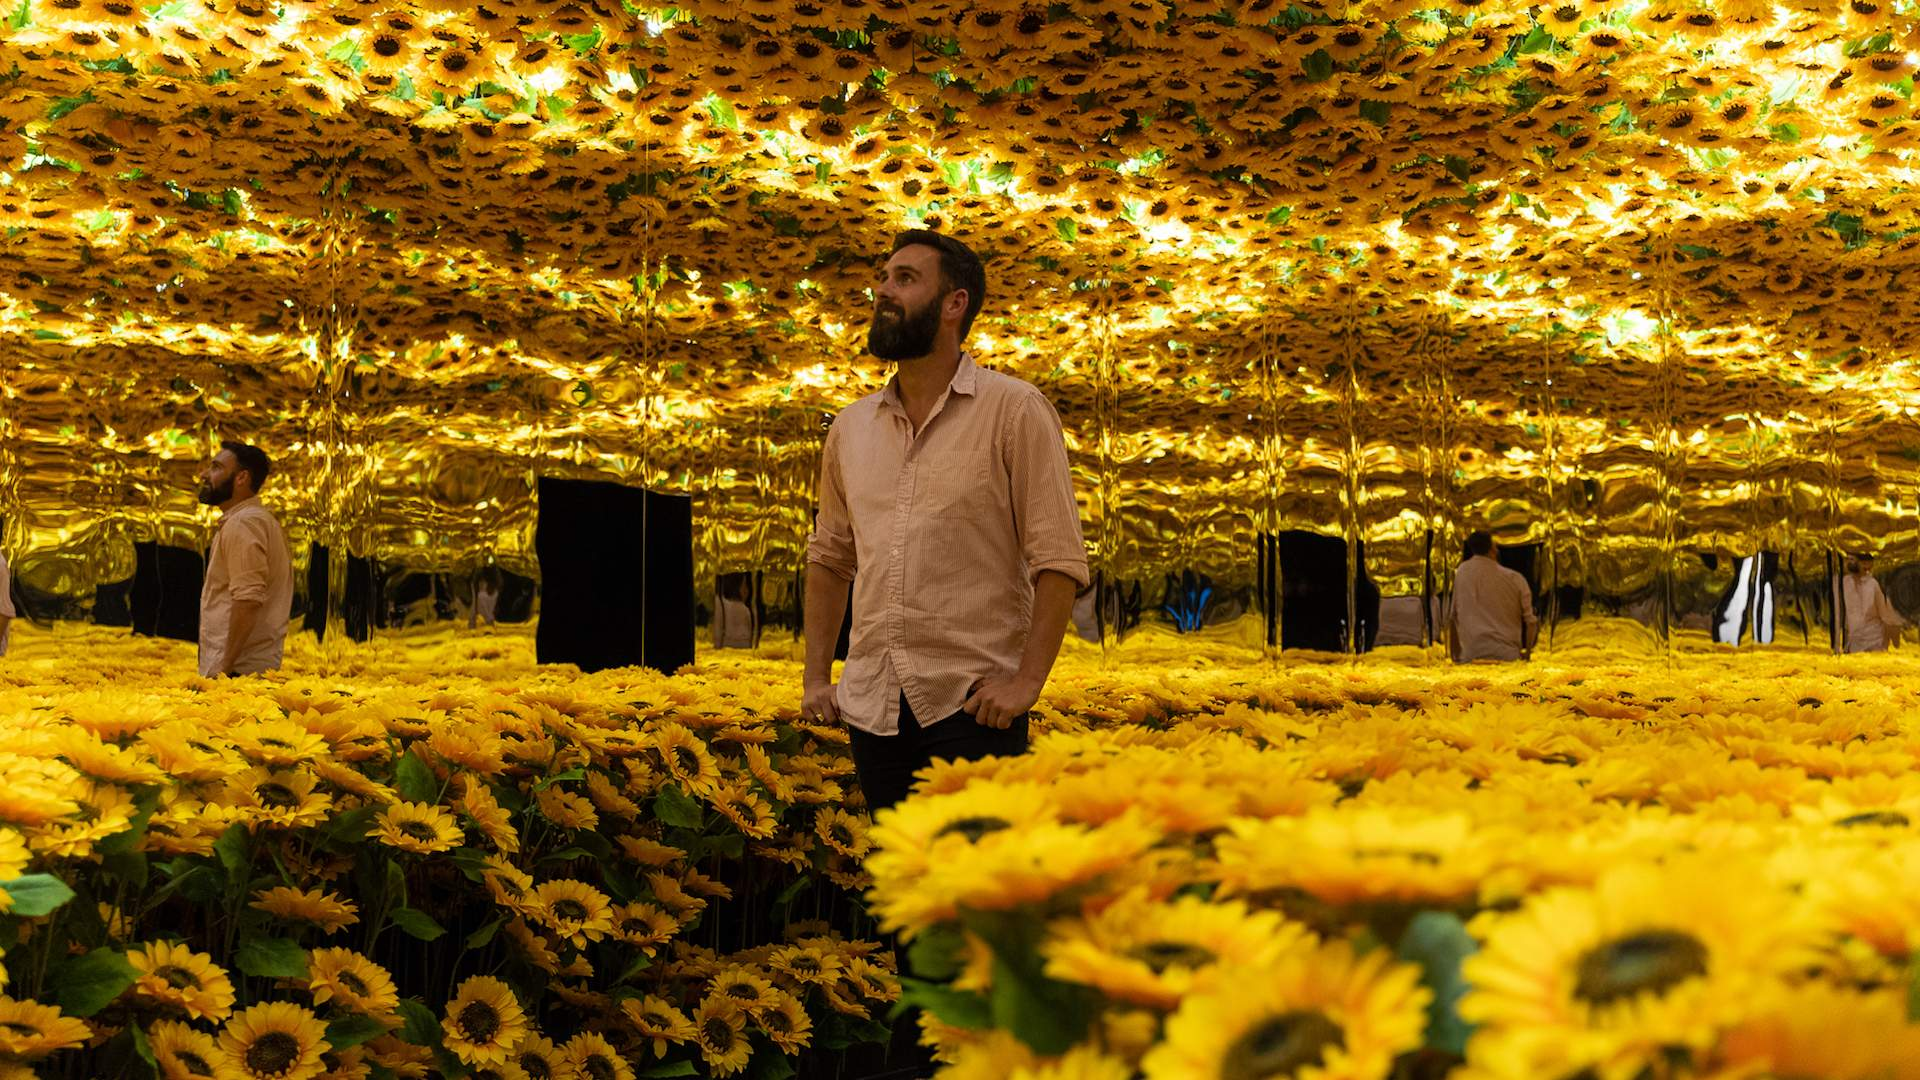 Huge Multi-Sensory Exhibition 'Van Gogh Alive' Is Touring Australia This Year